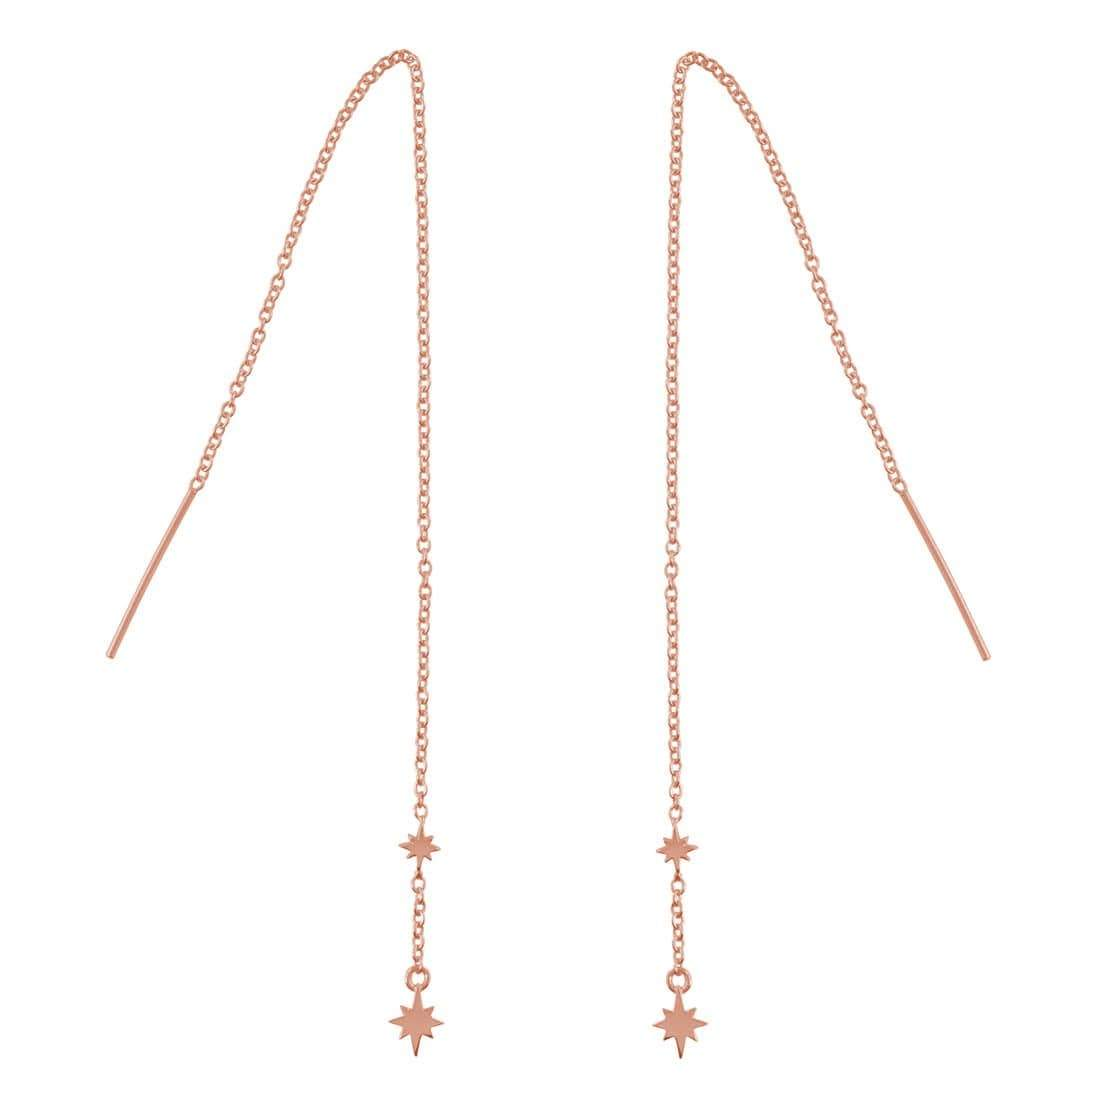 Midsummer Star Earrings Rose Gold Celestial Threaders